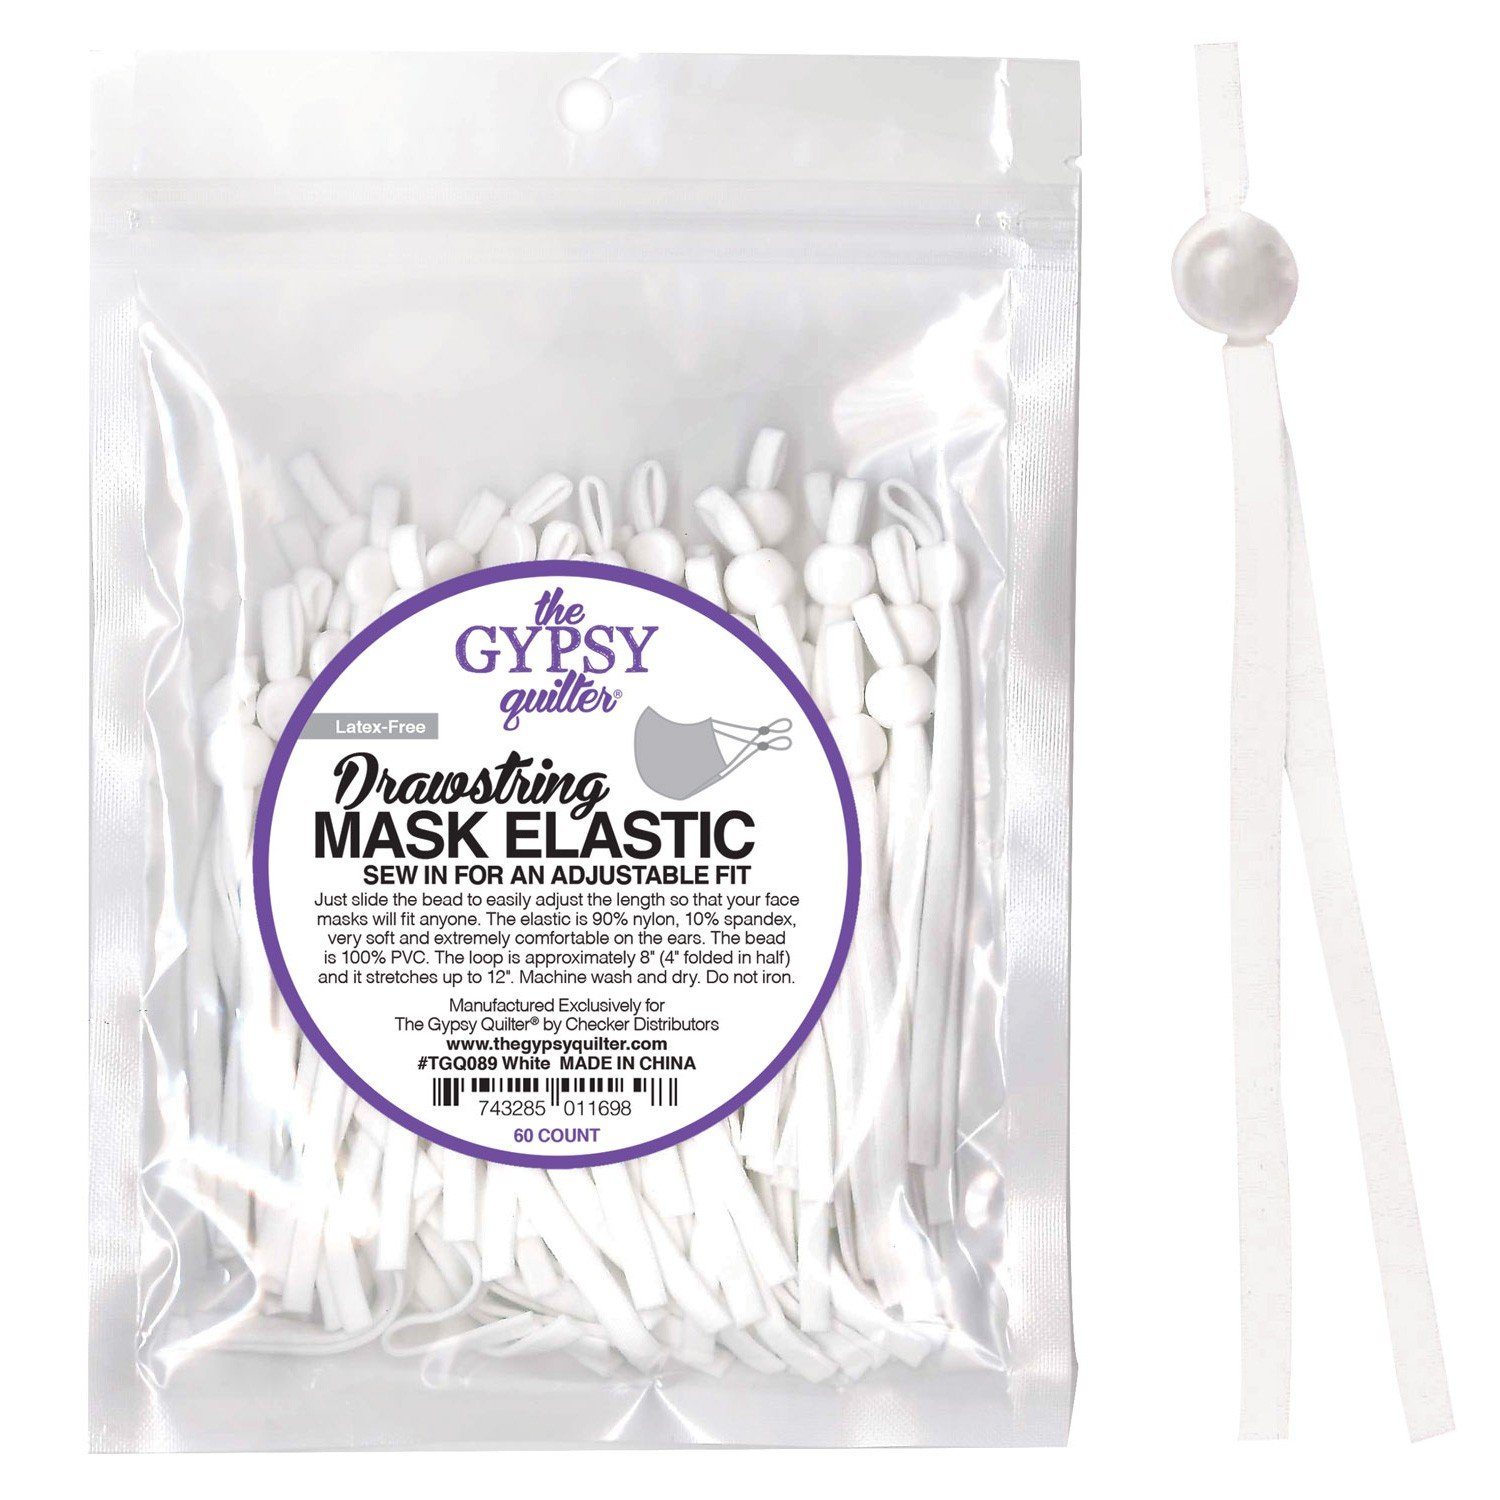 Drawstring Mask Elastic White Latex Free 60ct by the Gypsy Quilter